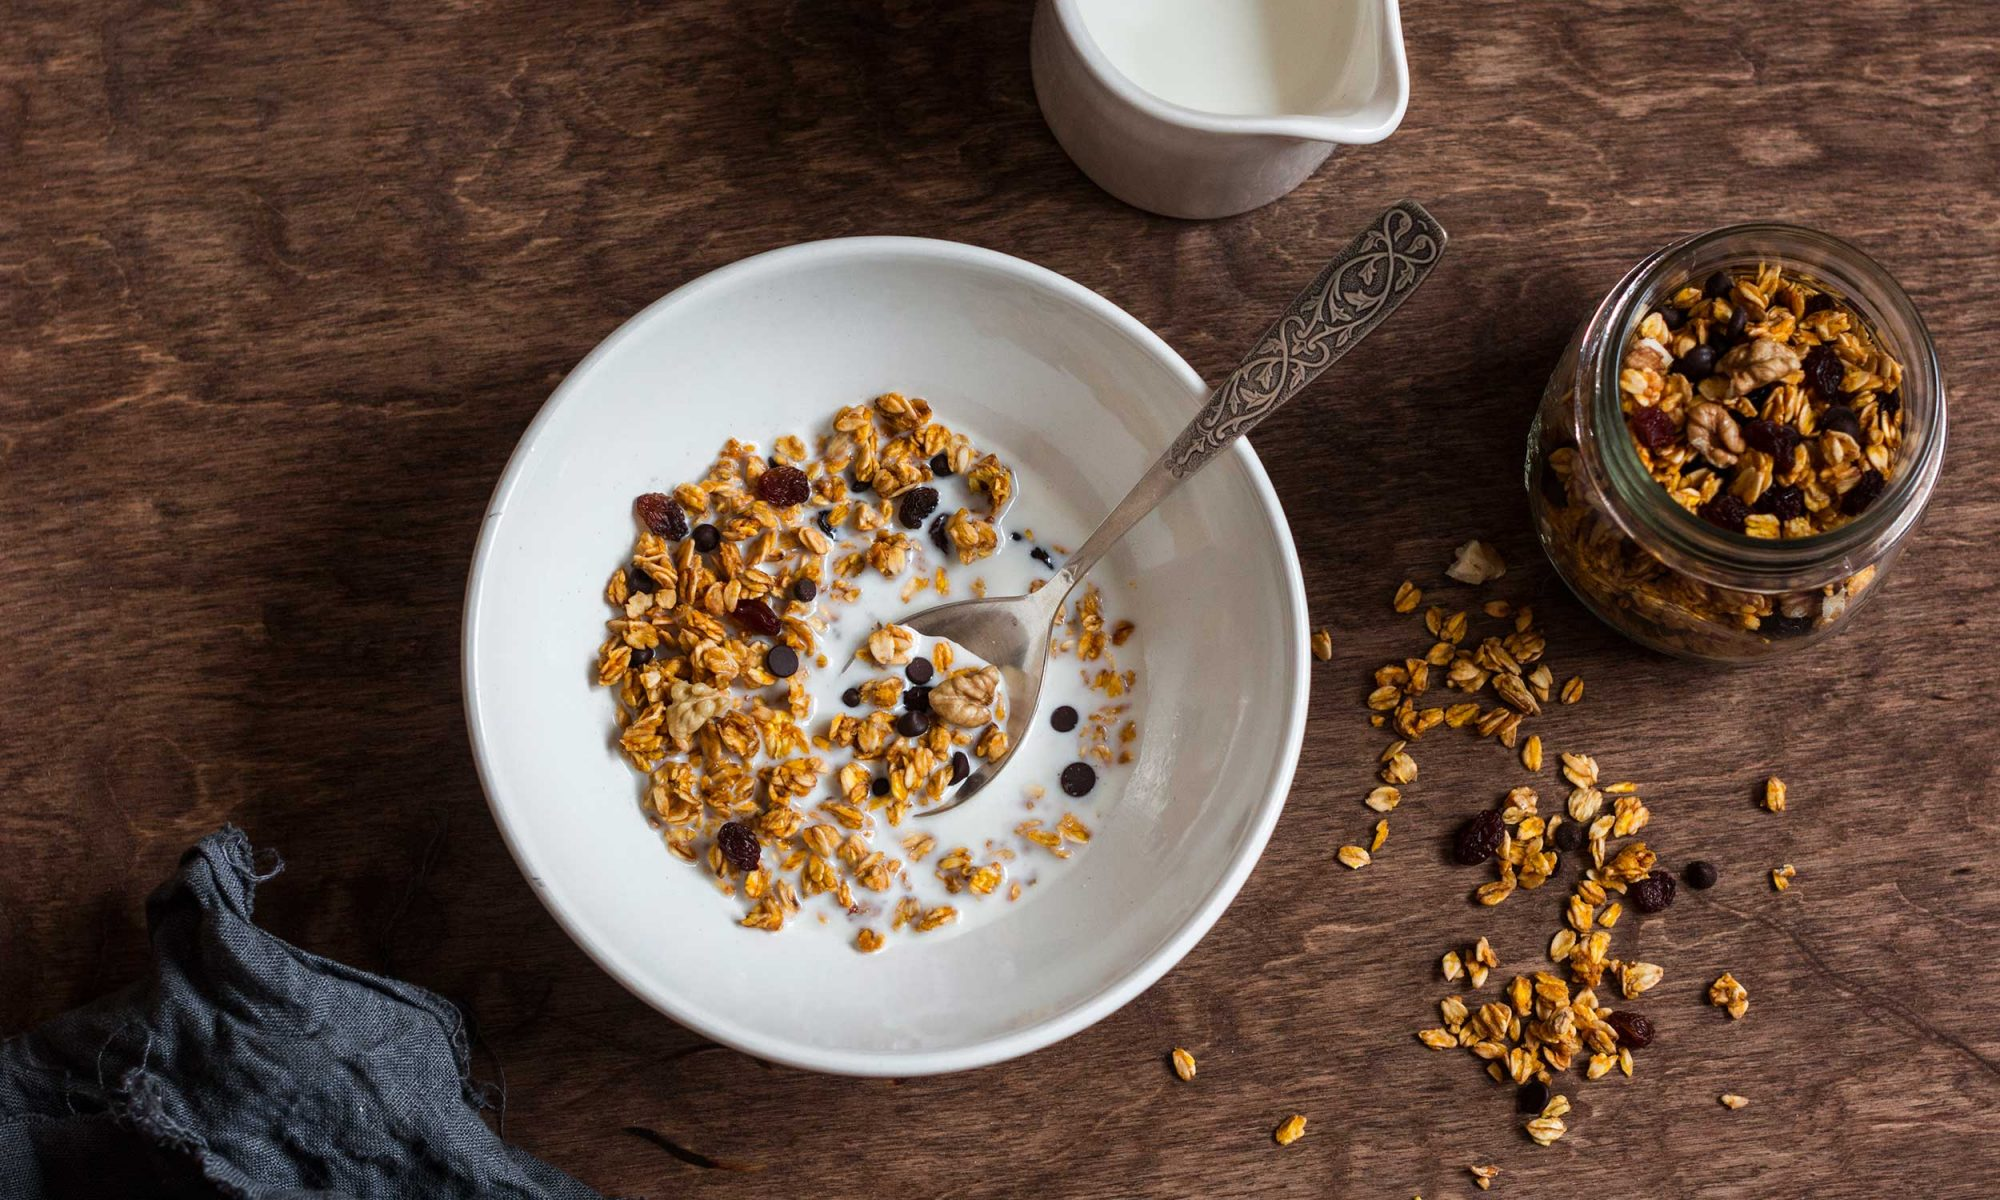 EC: FDA Rejects 'Love' as Granola Ingredient